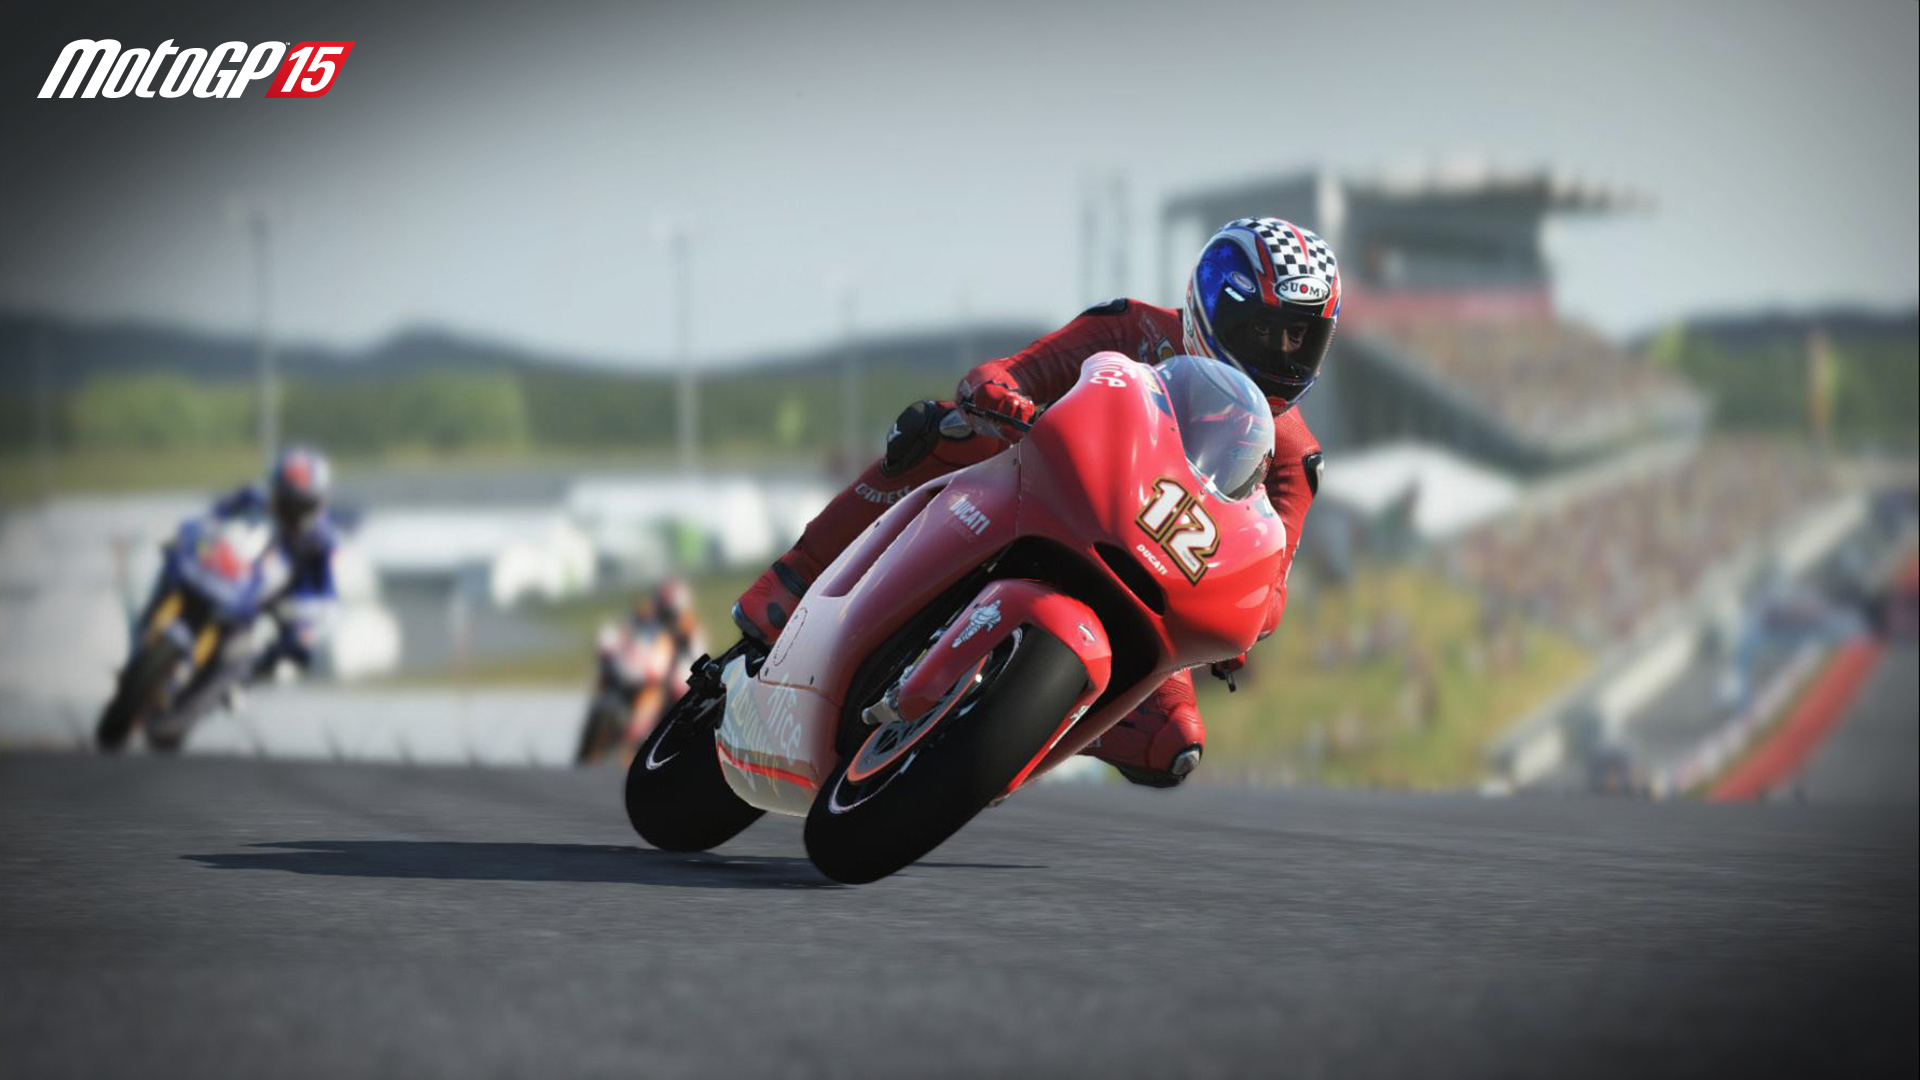 MotoGP15: 4 Stroke Champions and Events screenshot